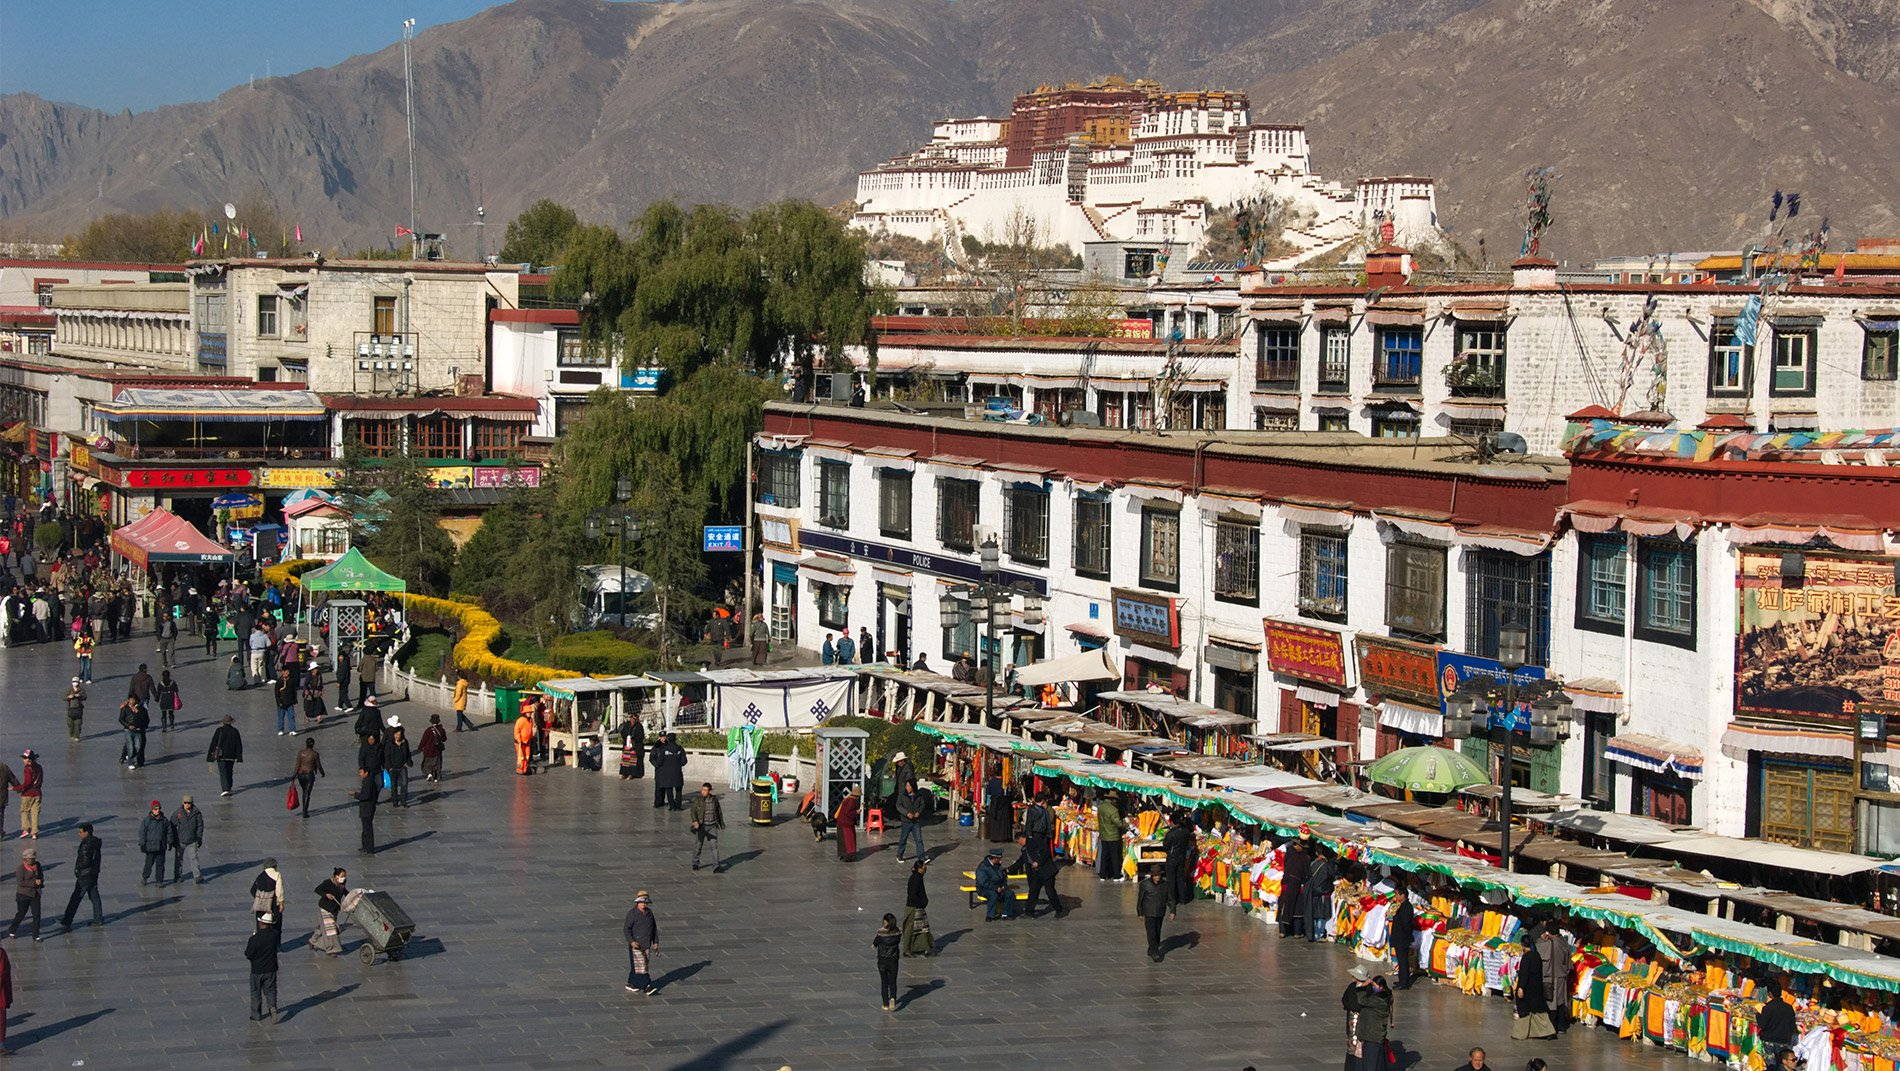 Barkhor Market~Shuffle through this bustling market with thousands of locals and pilgrims.